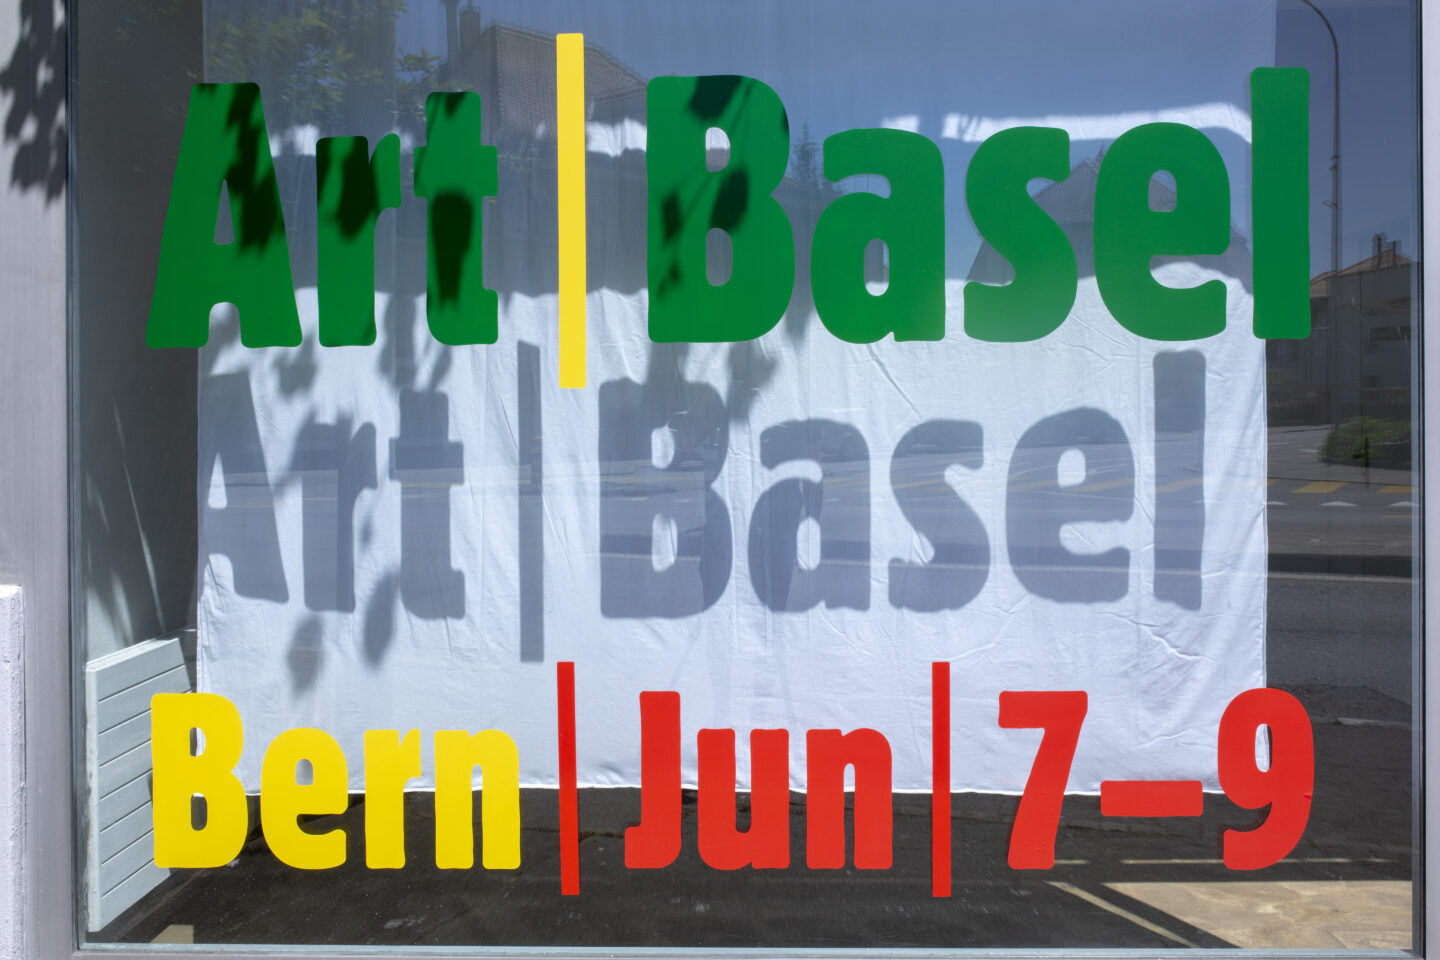 Exhibition View Groupshow «Art Basel Bern – Booth A1» at Ballostar Mobile, Bern, 2019 / Courtesy: the artist and Ballostar Mobile